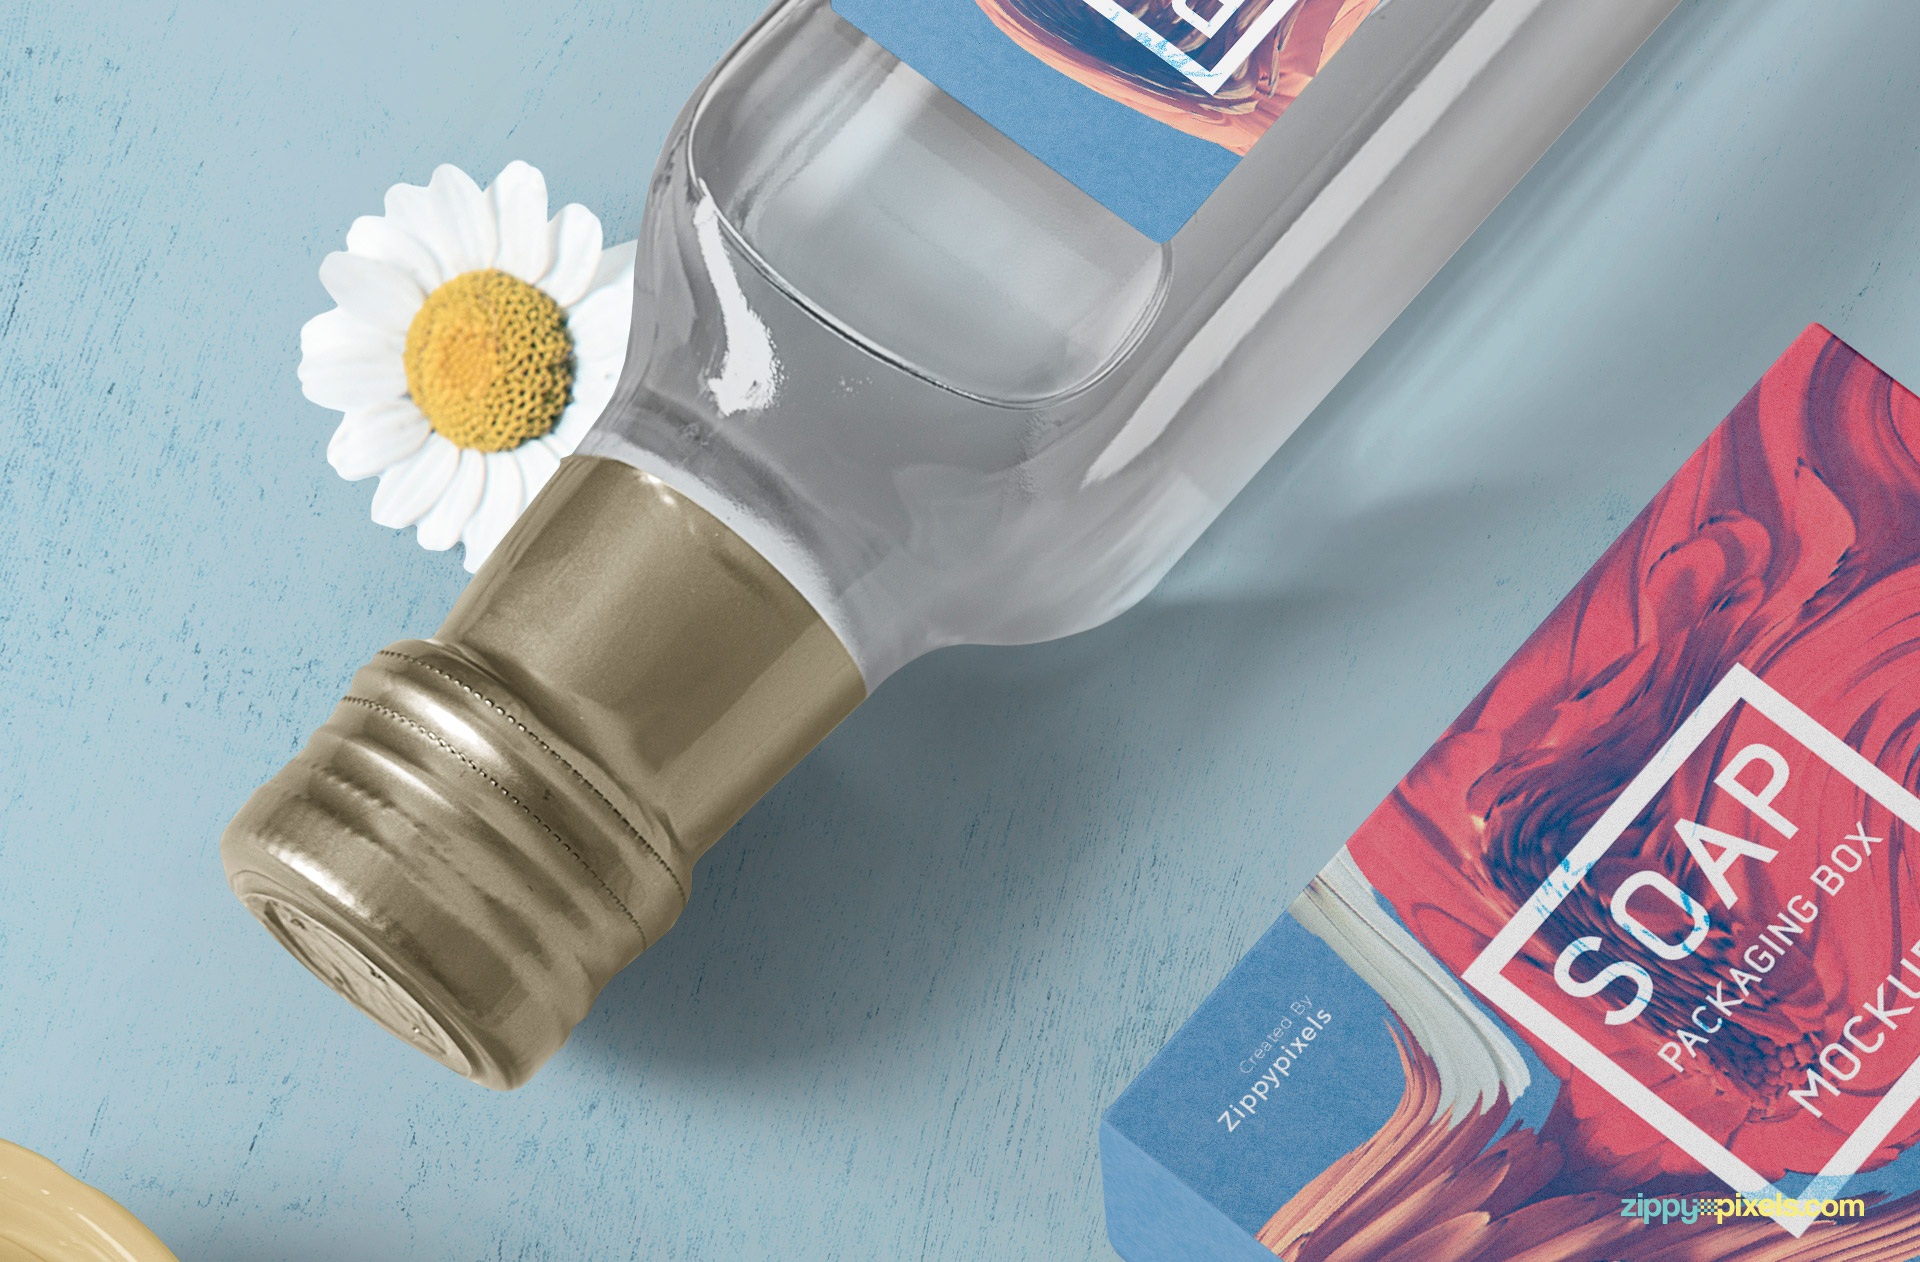 You can change the color of cap and liquid of glass bottle mockup.